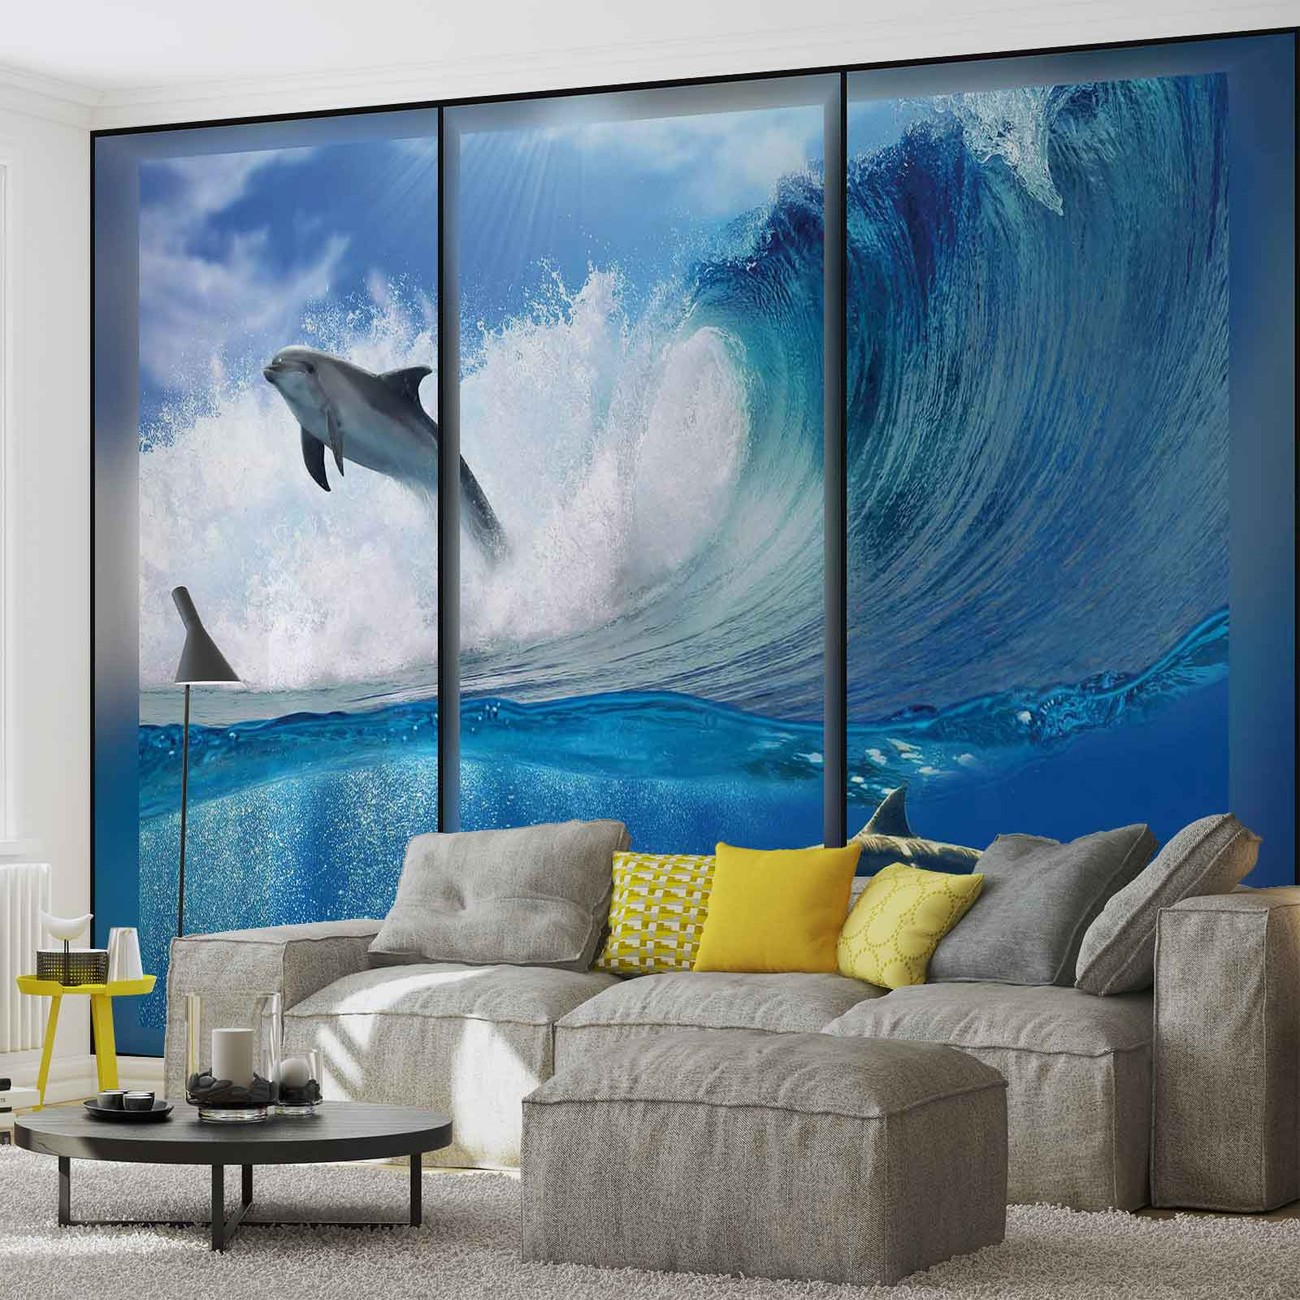 dauphins saut vagues mer poster mural papier peint. Black Bedroom Furniture Sets. Home Design Ideas